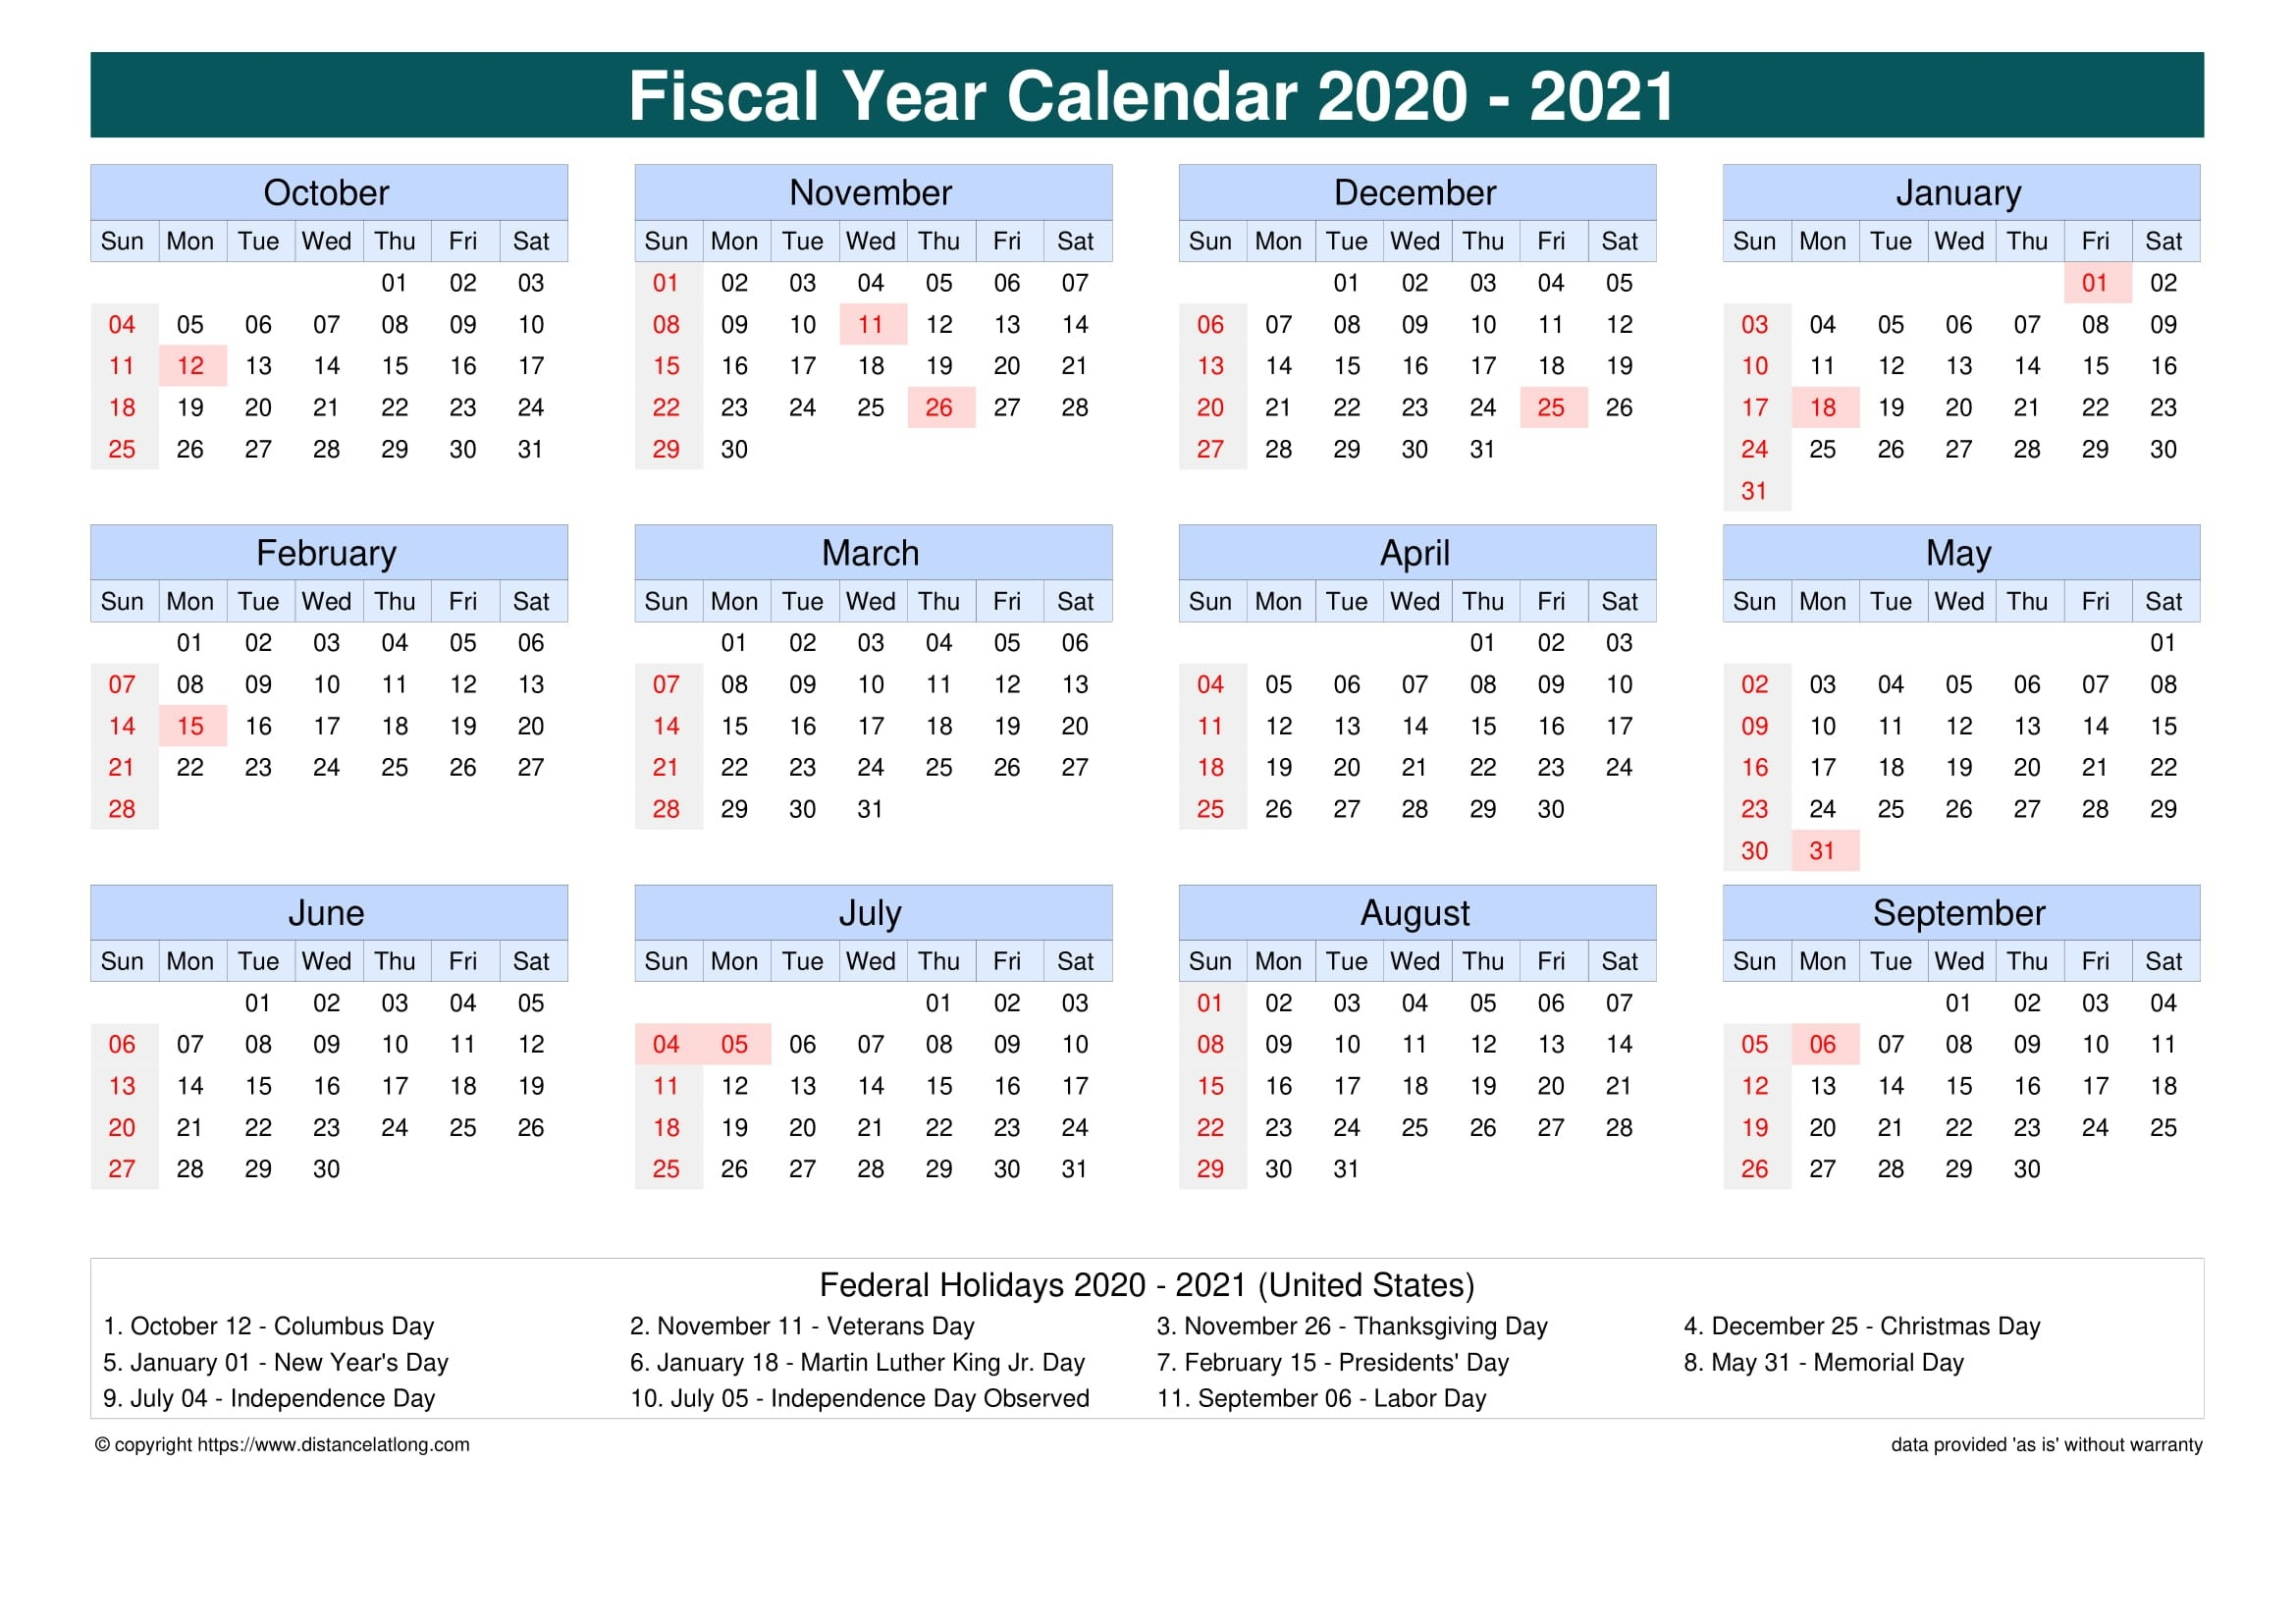 Fiscal Year 2020-2021 Calendar Templates, Free Printable  2021 Financial Calendar Australia